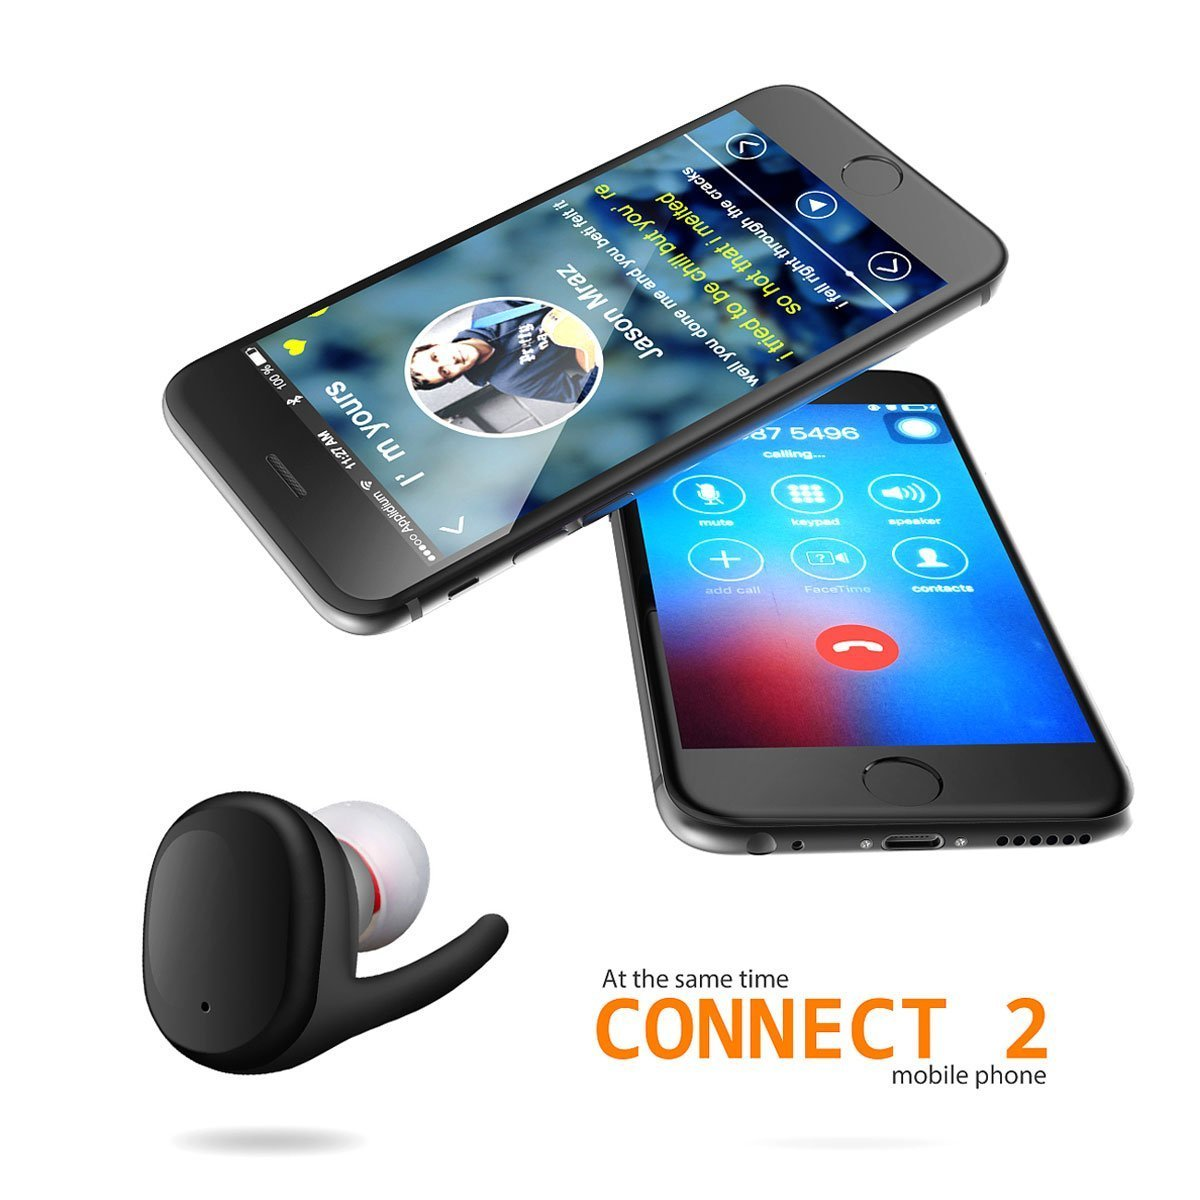 Amazon.com: New Waterproof Touch Wireless Bluetooth Ear Earphone Mini Invisible Tws Stereo Headphones (Bright black): Cell Phones & Accessories